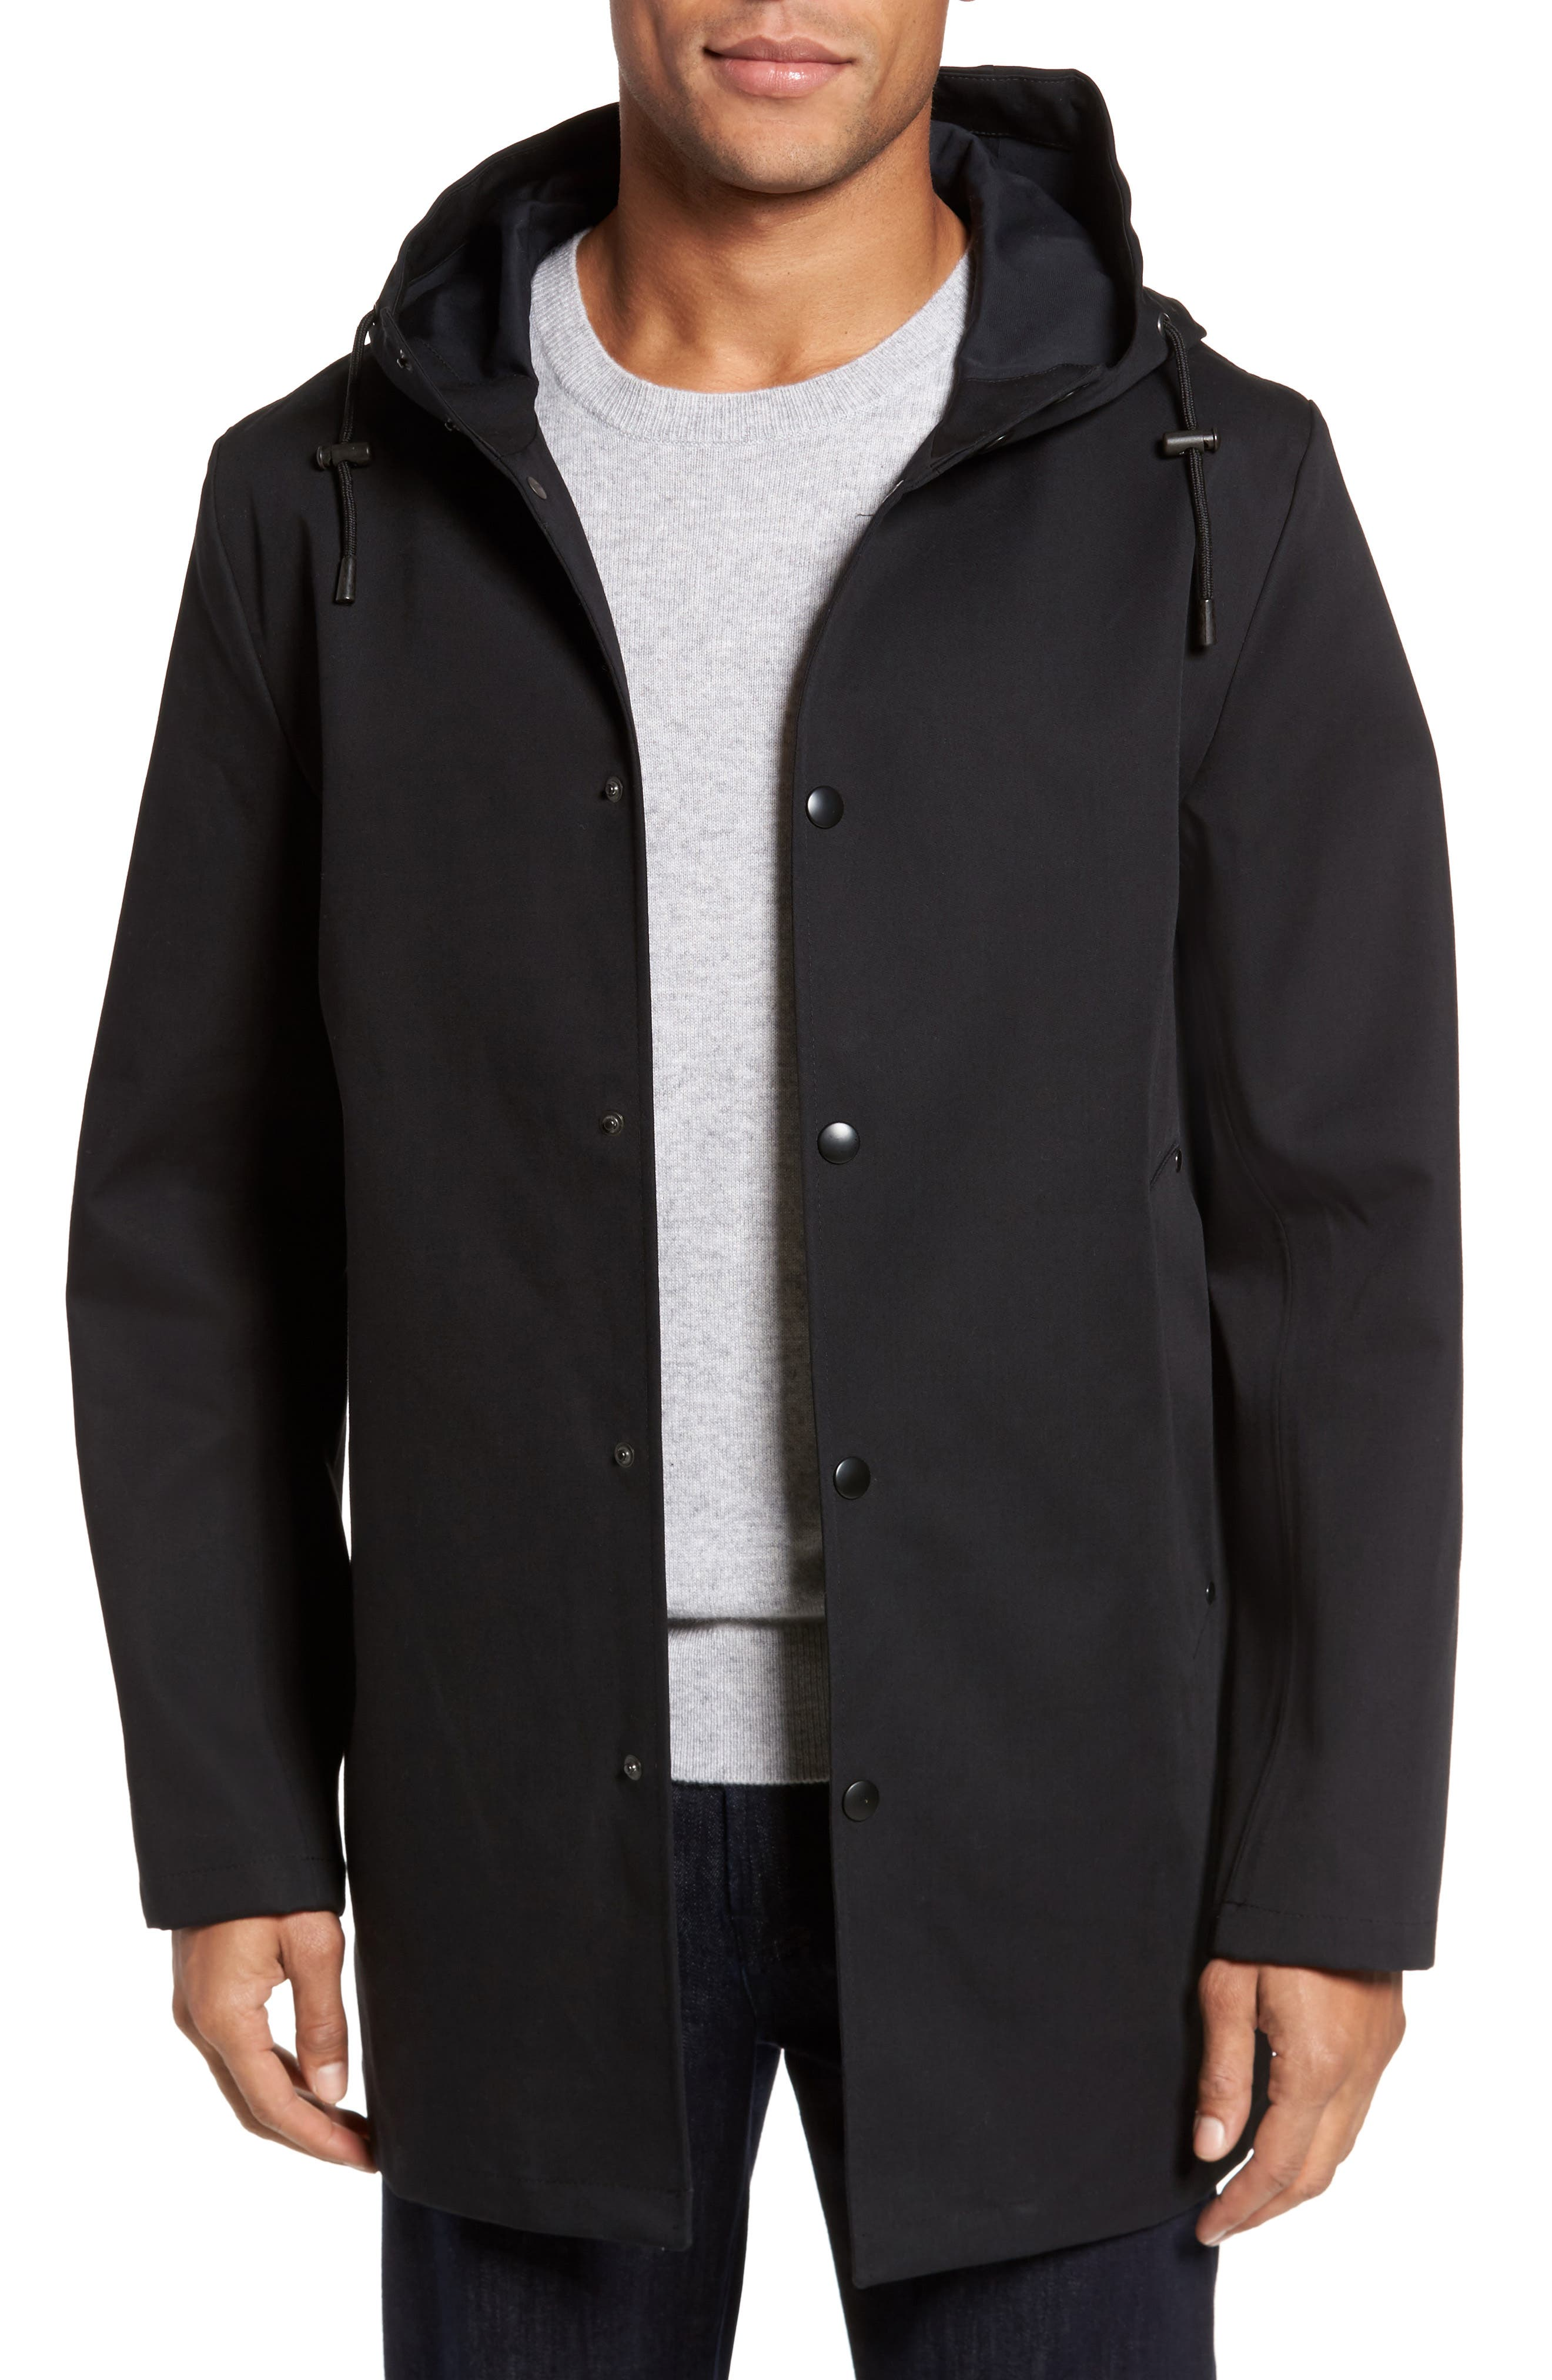 Alternate Image 1 Selected - Stutterheim Stockholm Bonded Waterproof Hooded Raincoat